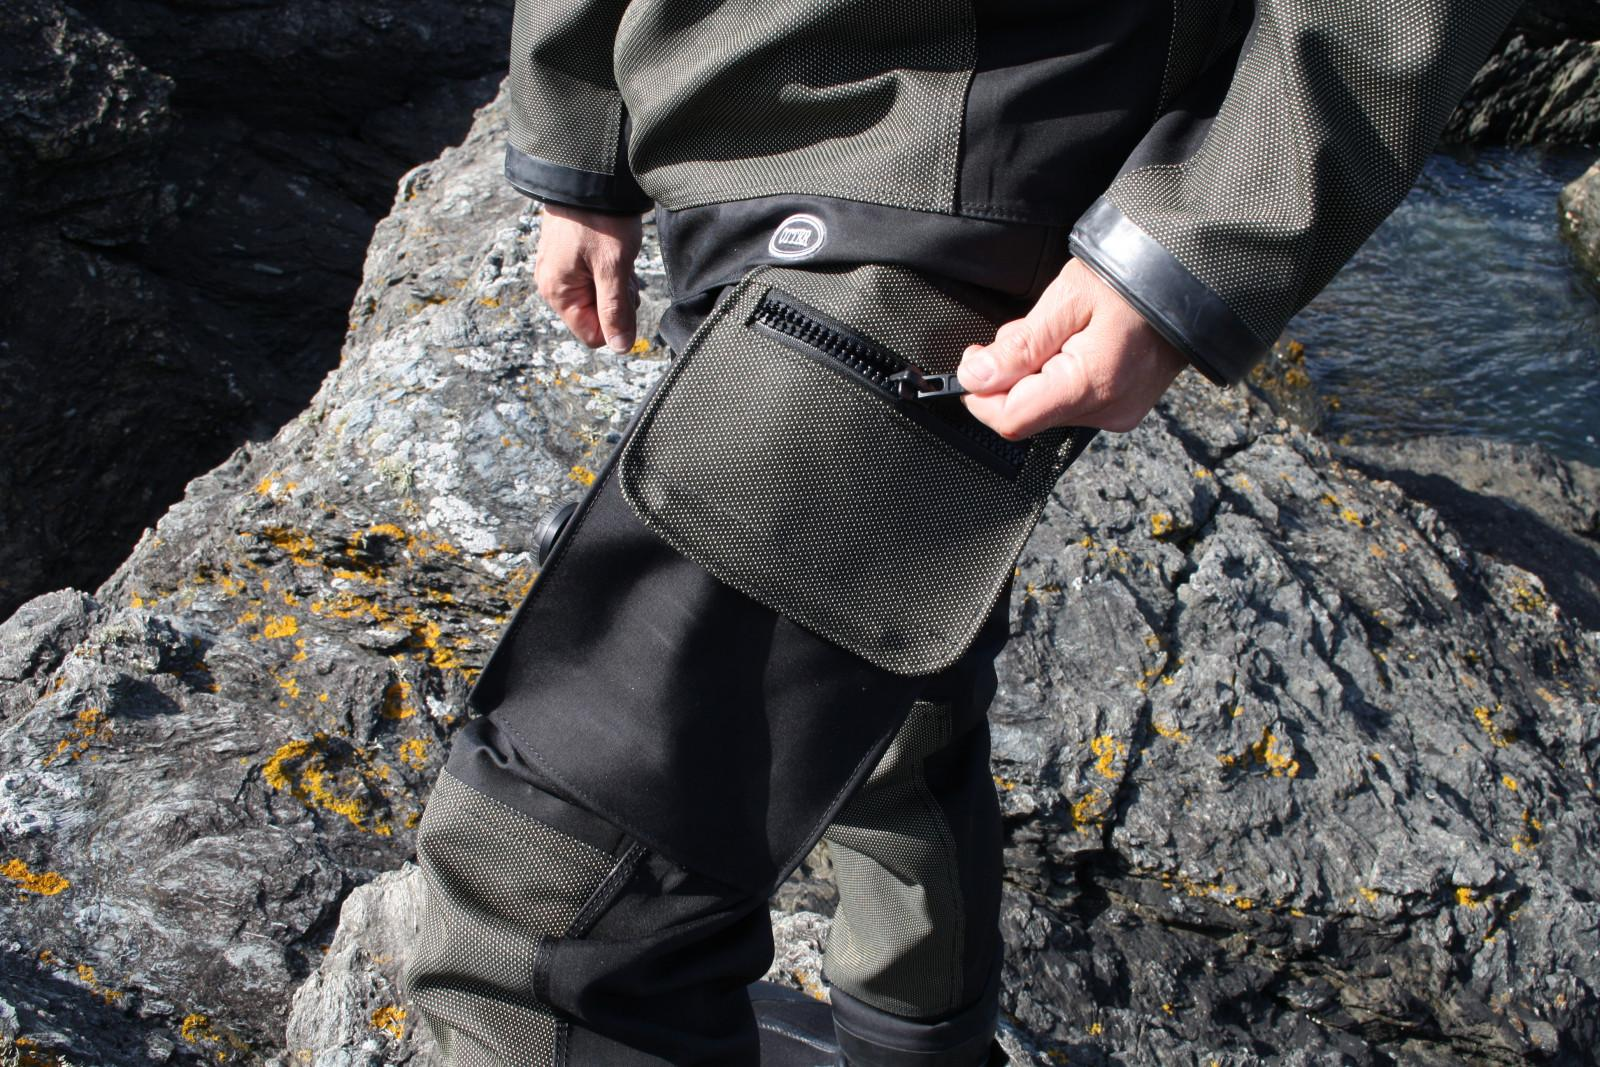 The spacious thigh pockets are well equipped with bungee cords and D-rings to secure the contents - slates, back-up torches, etc